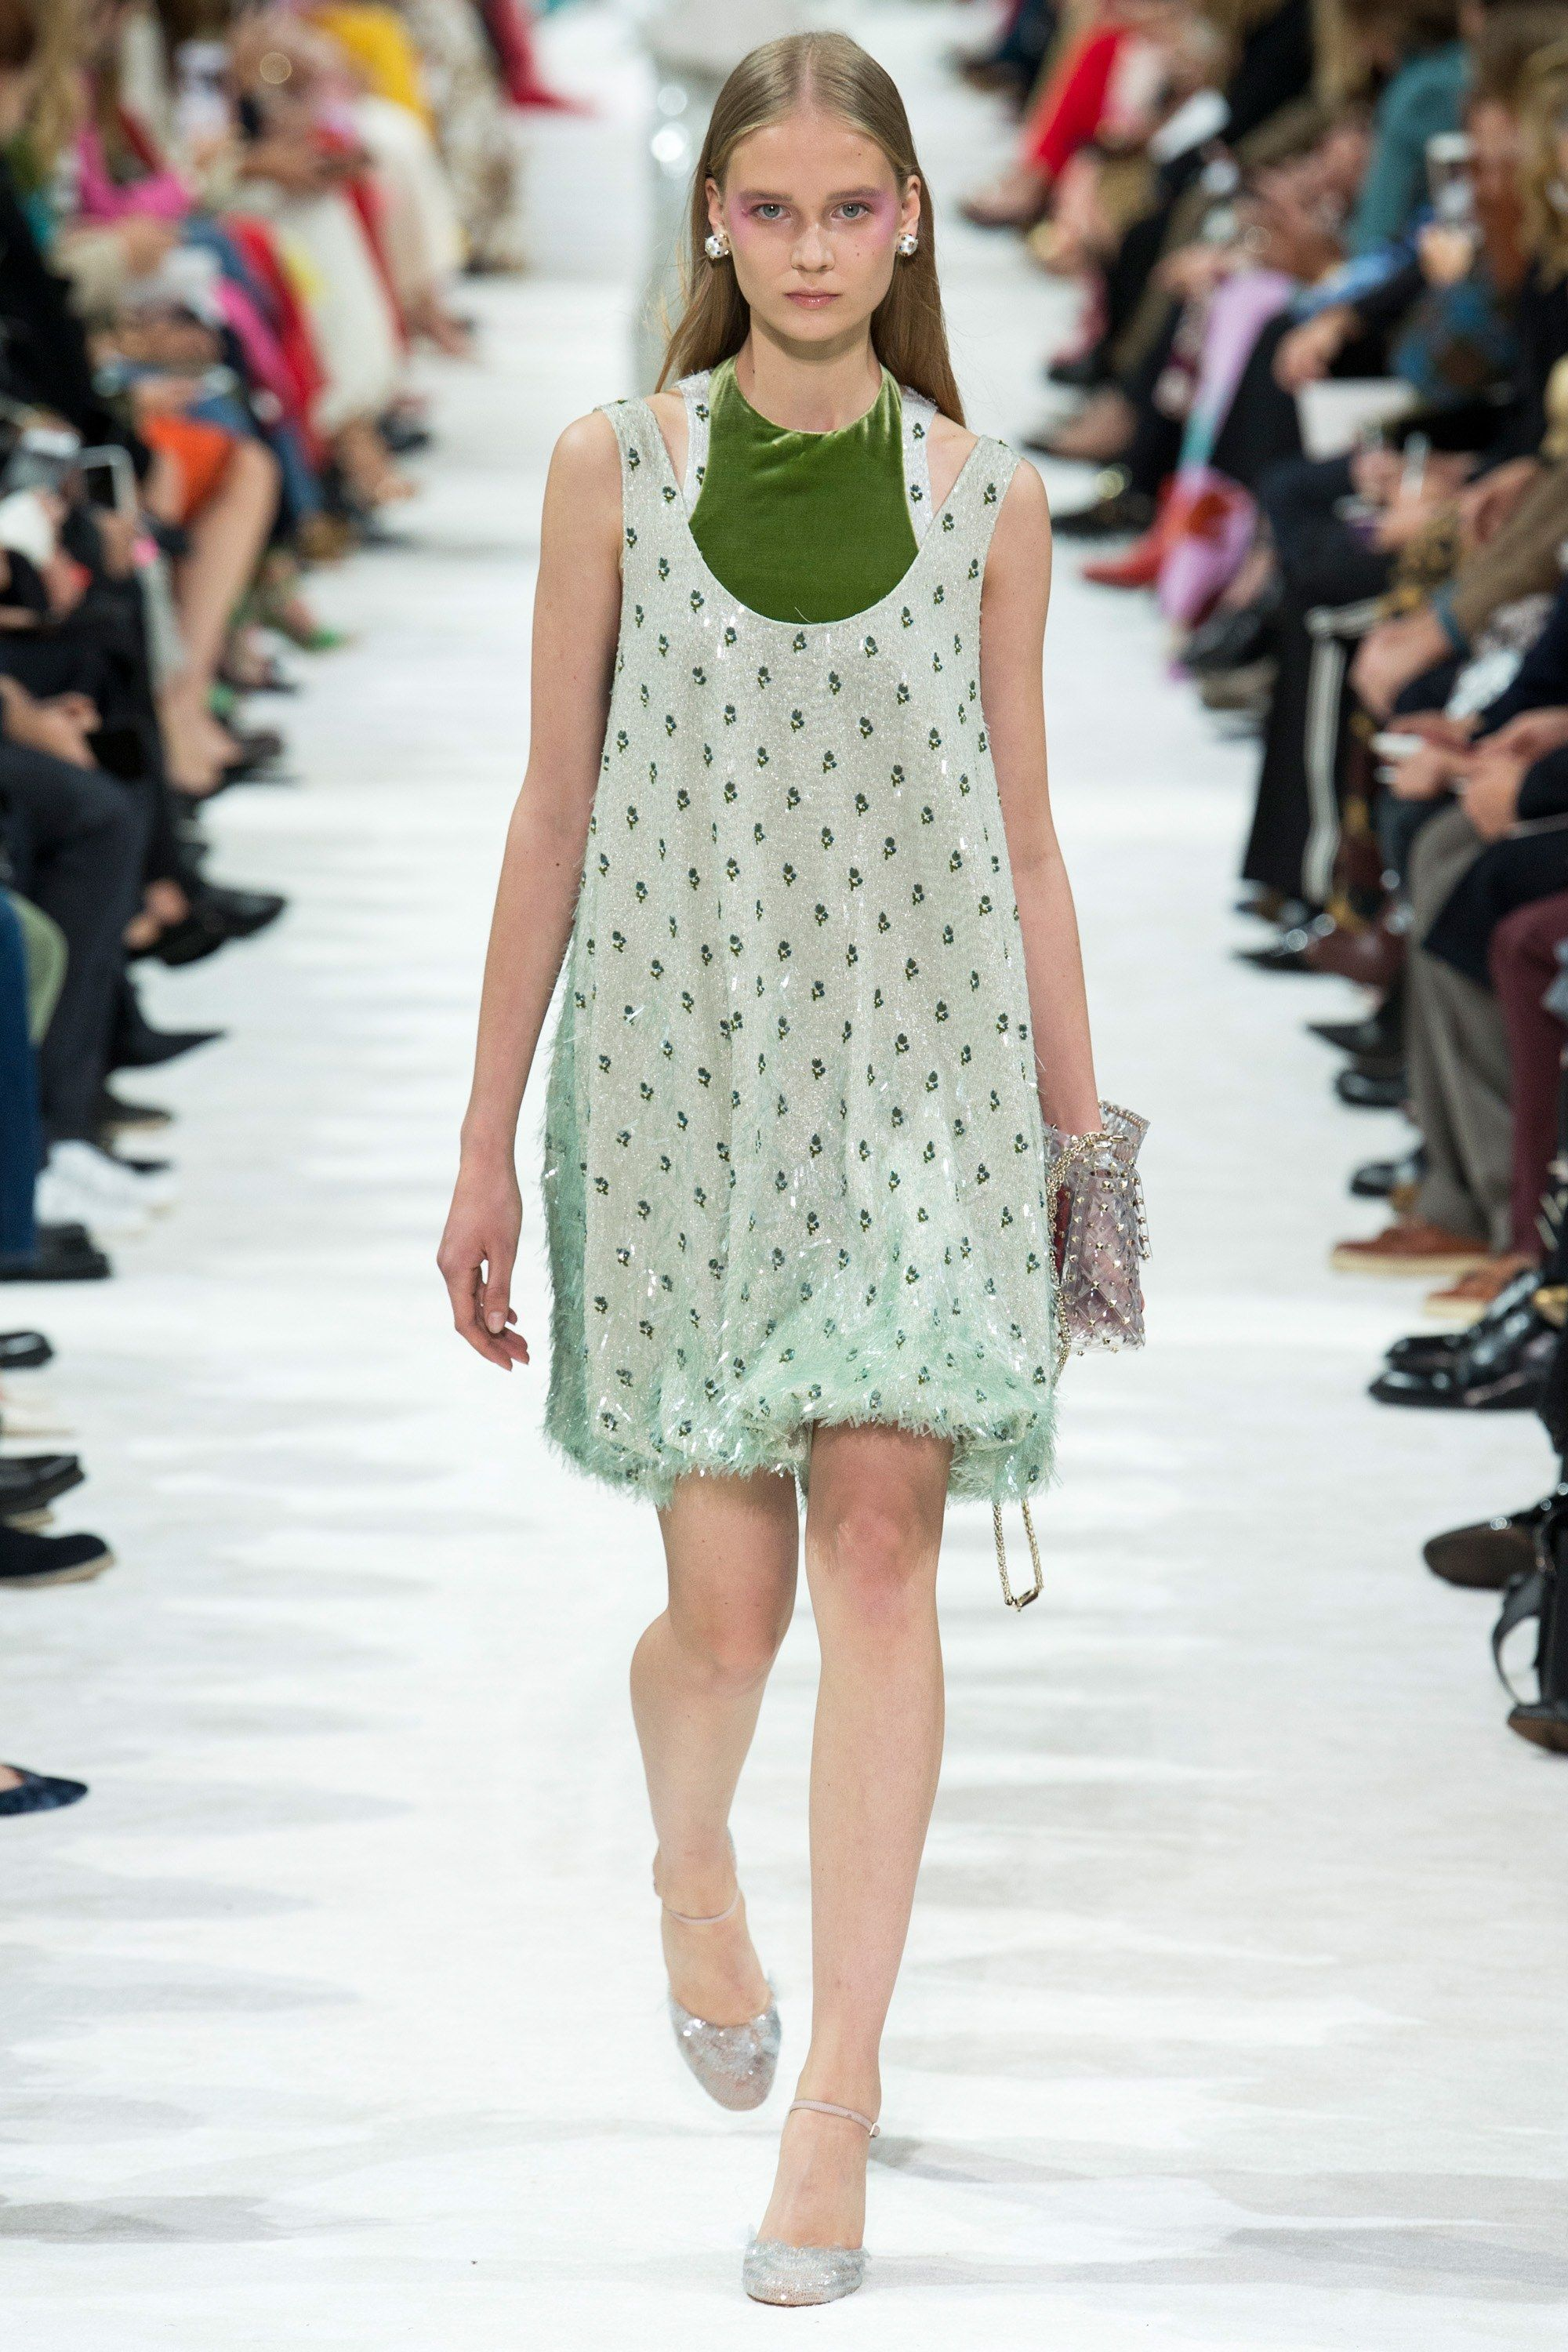 823ccf34da0 See the complete Valentino Spring 2018 Ready-to-Wear collection ...